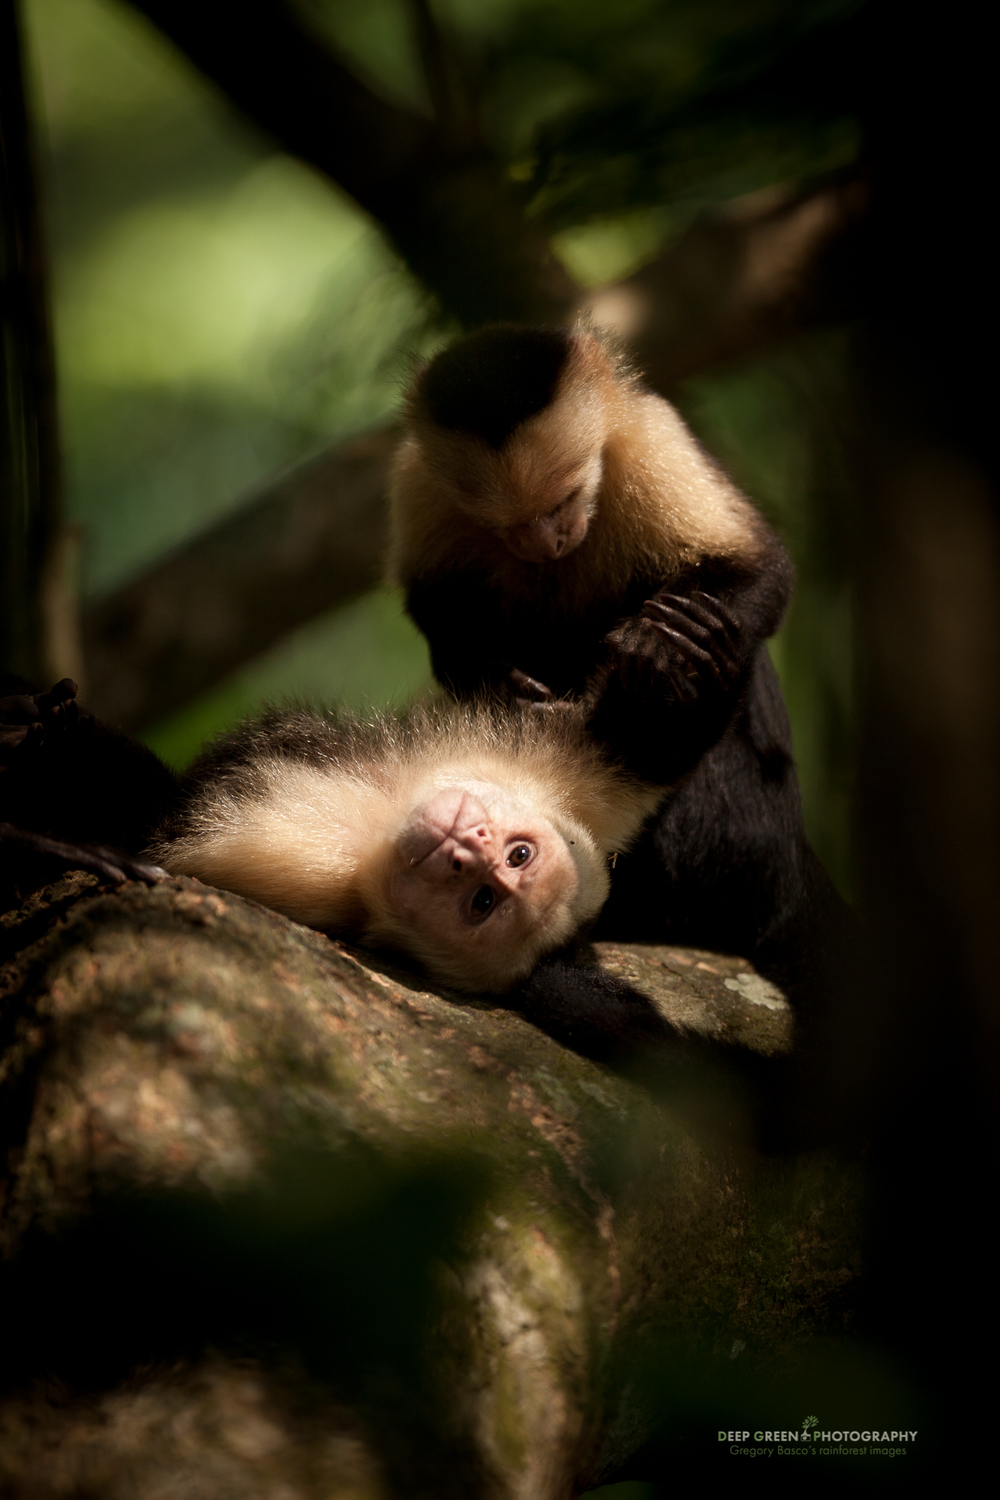 white-faced capuching monkeys in Manuel Antonio National Park groom each other to help cement social bonds